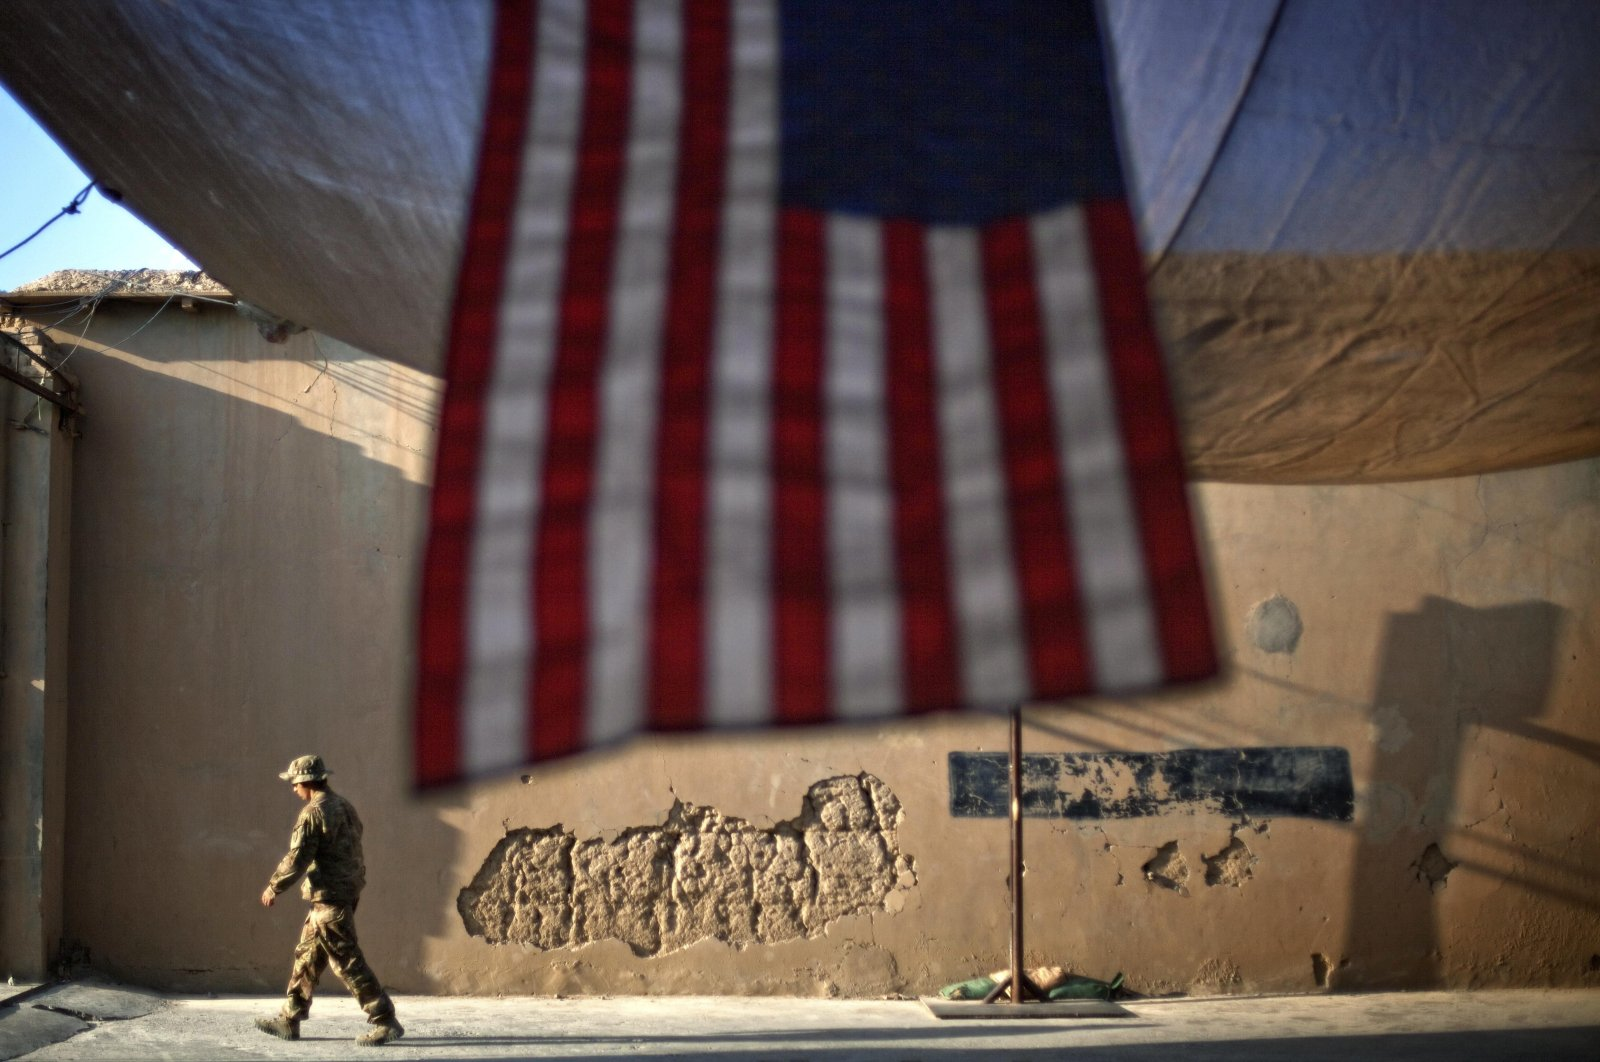 A U.S. Army soldier walks past an American Flag hanging in preparation for a ceremony commemorating the 10th anniversary of the 9/11 attacks, at Forward Operating Base Bostick in Kunar province, Afghanistan, Sept. 11, 2011. (AP Photo)